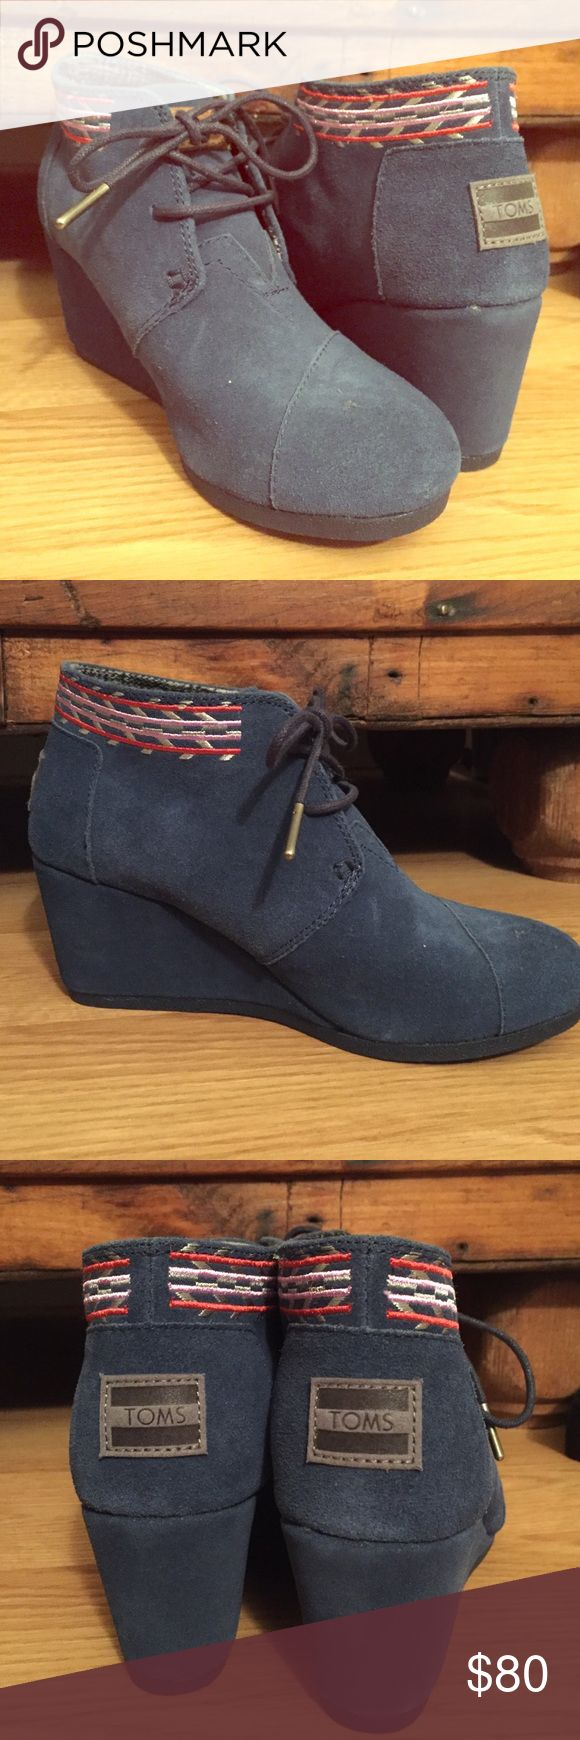 TOMS Booties Blue suede TOMS wedged booties with decorative trim. Brand new, never worn. TOMS Shoes Ankle Boots & Booties